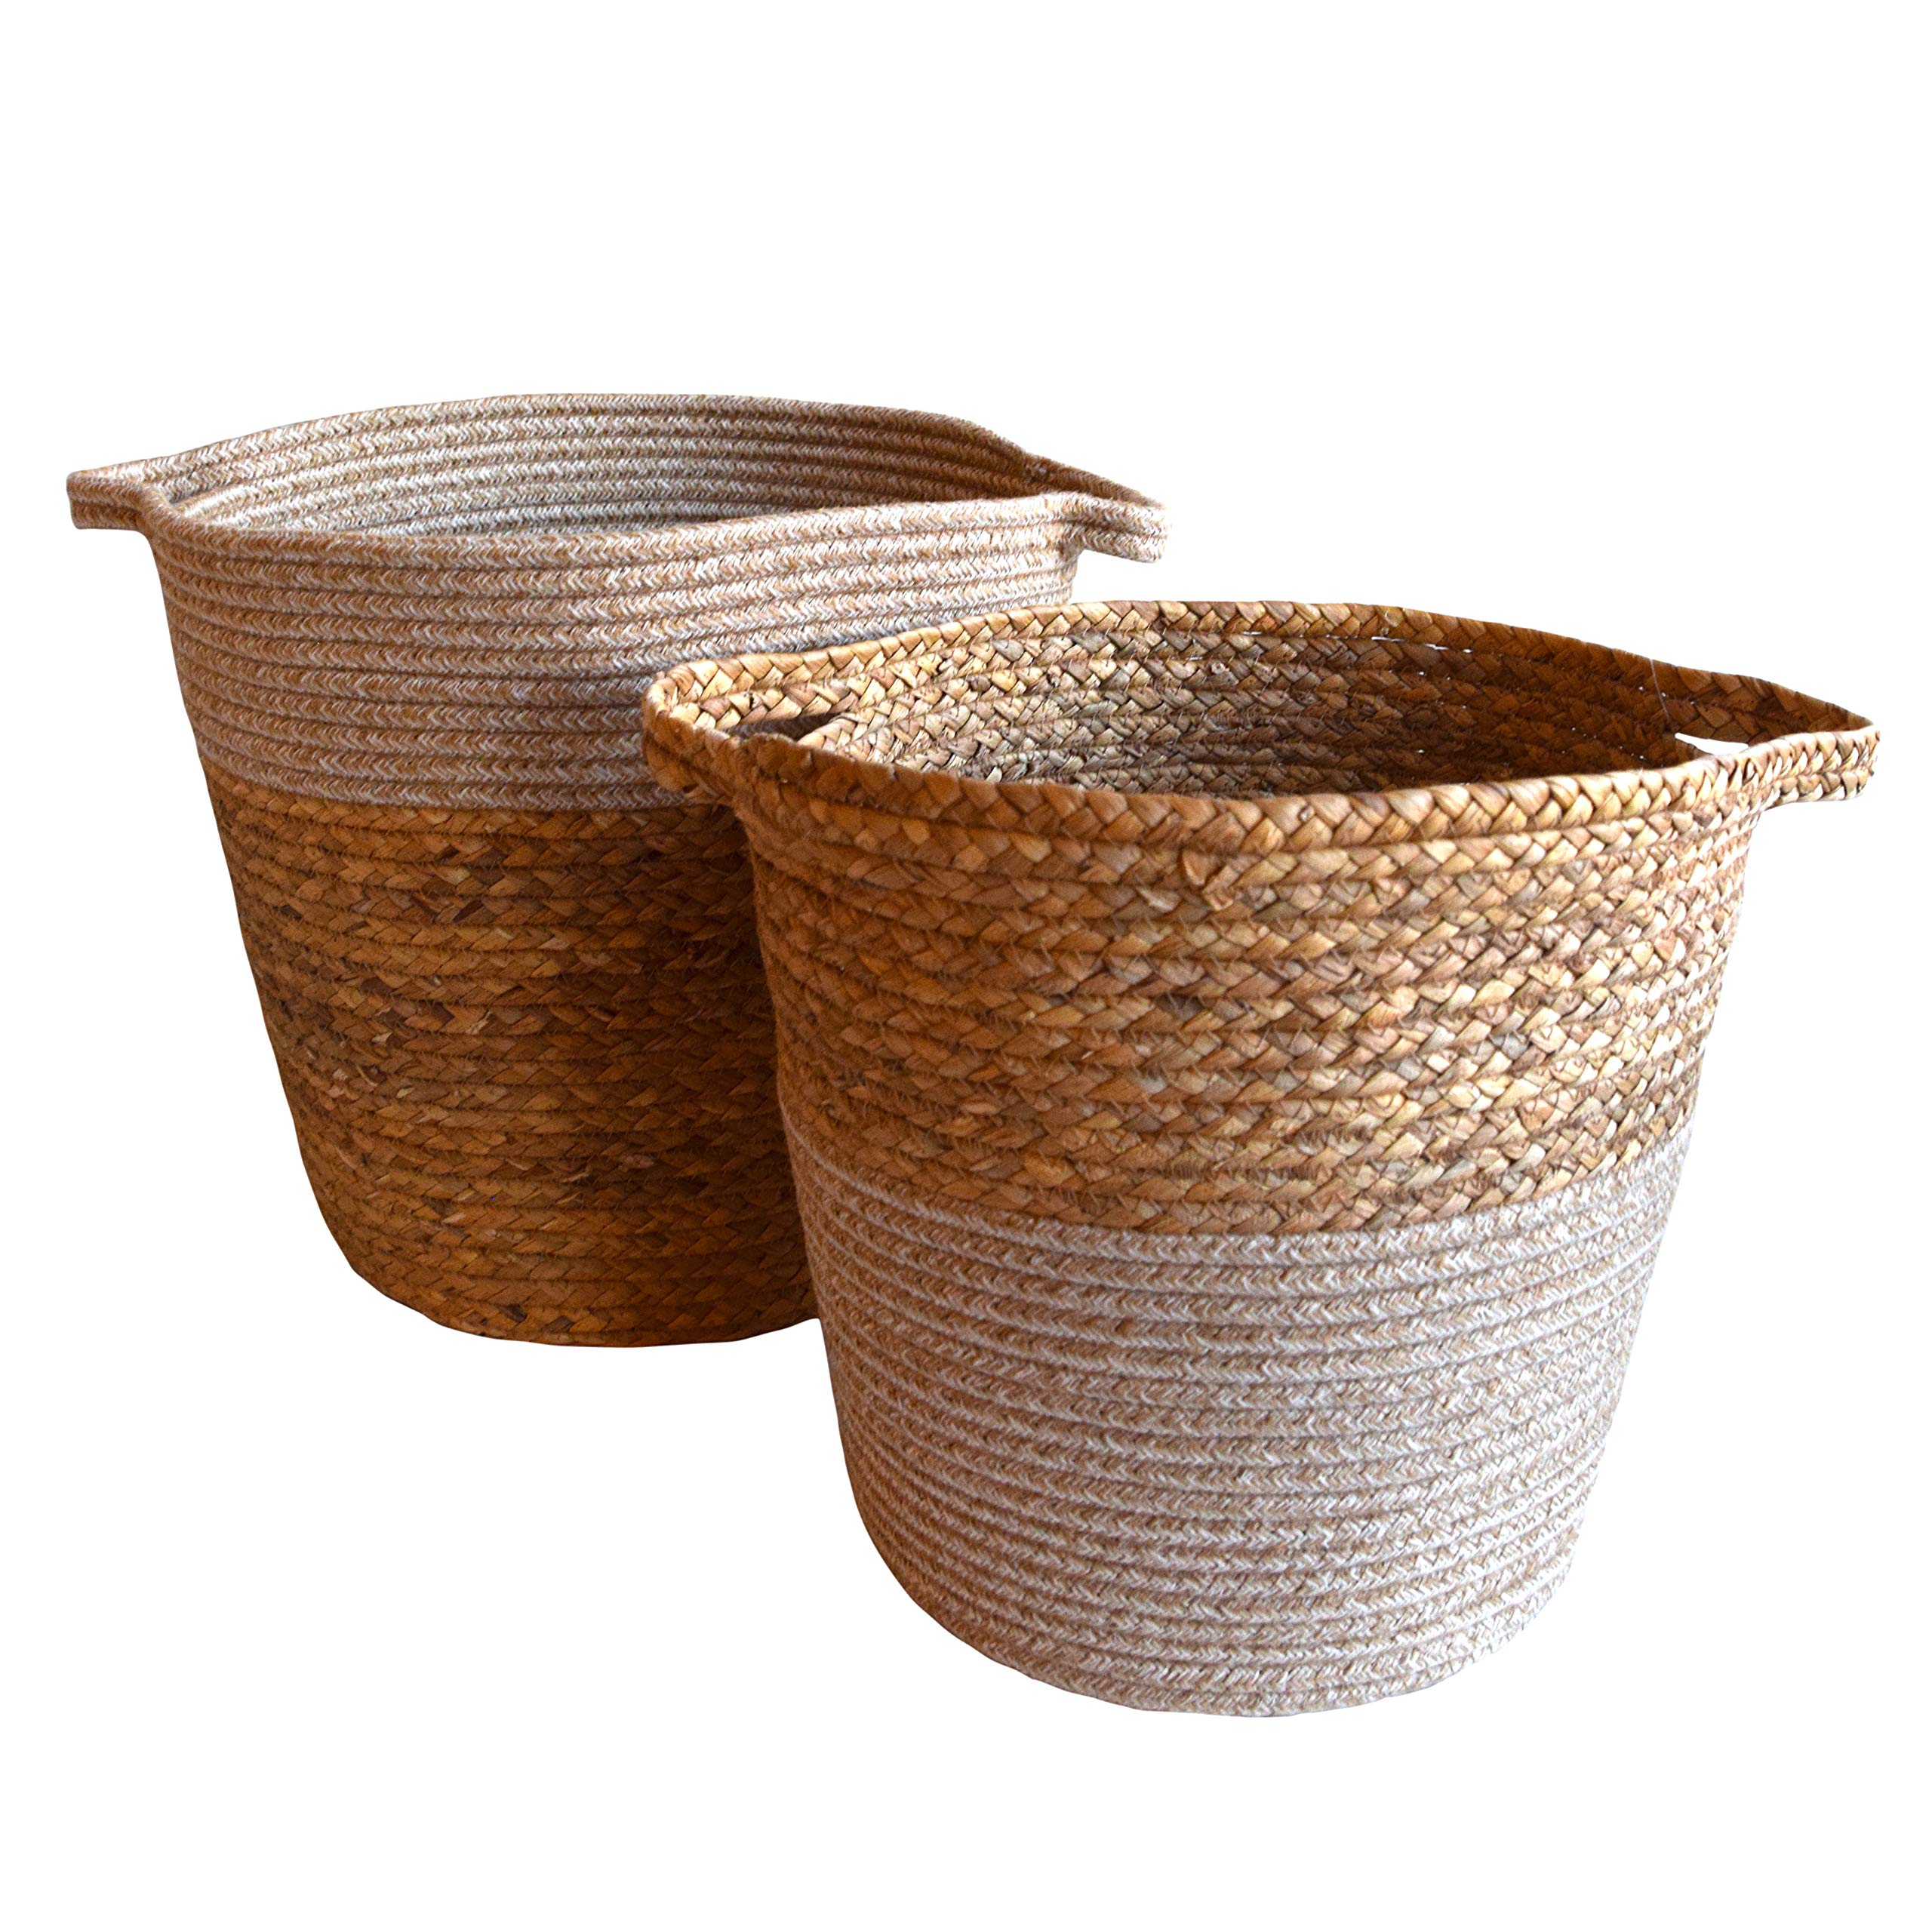 DUFMOD Handwoven Natural Seagrass and Cotton Basket for Storage or Planter (White top Bottom 2 pc Set, Large)